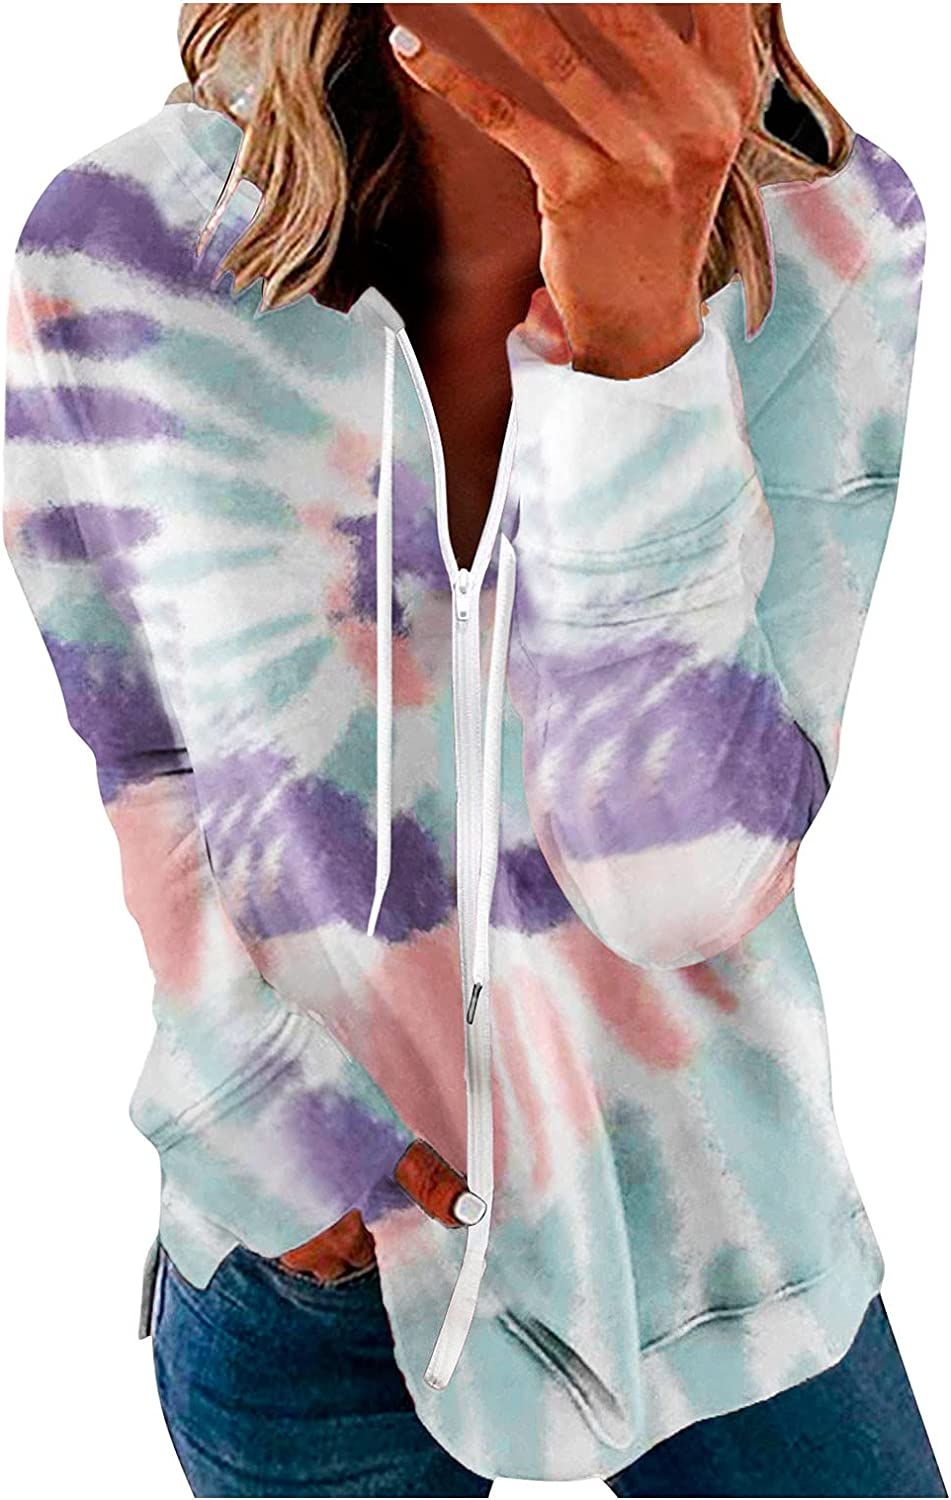 Hoodies for Women Zip Up Pullover Graphic Long Sleeve Color Print Pullover Hooded Sweatshirts Sweaters Jacket Coats